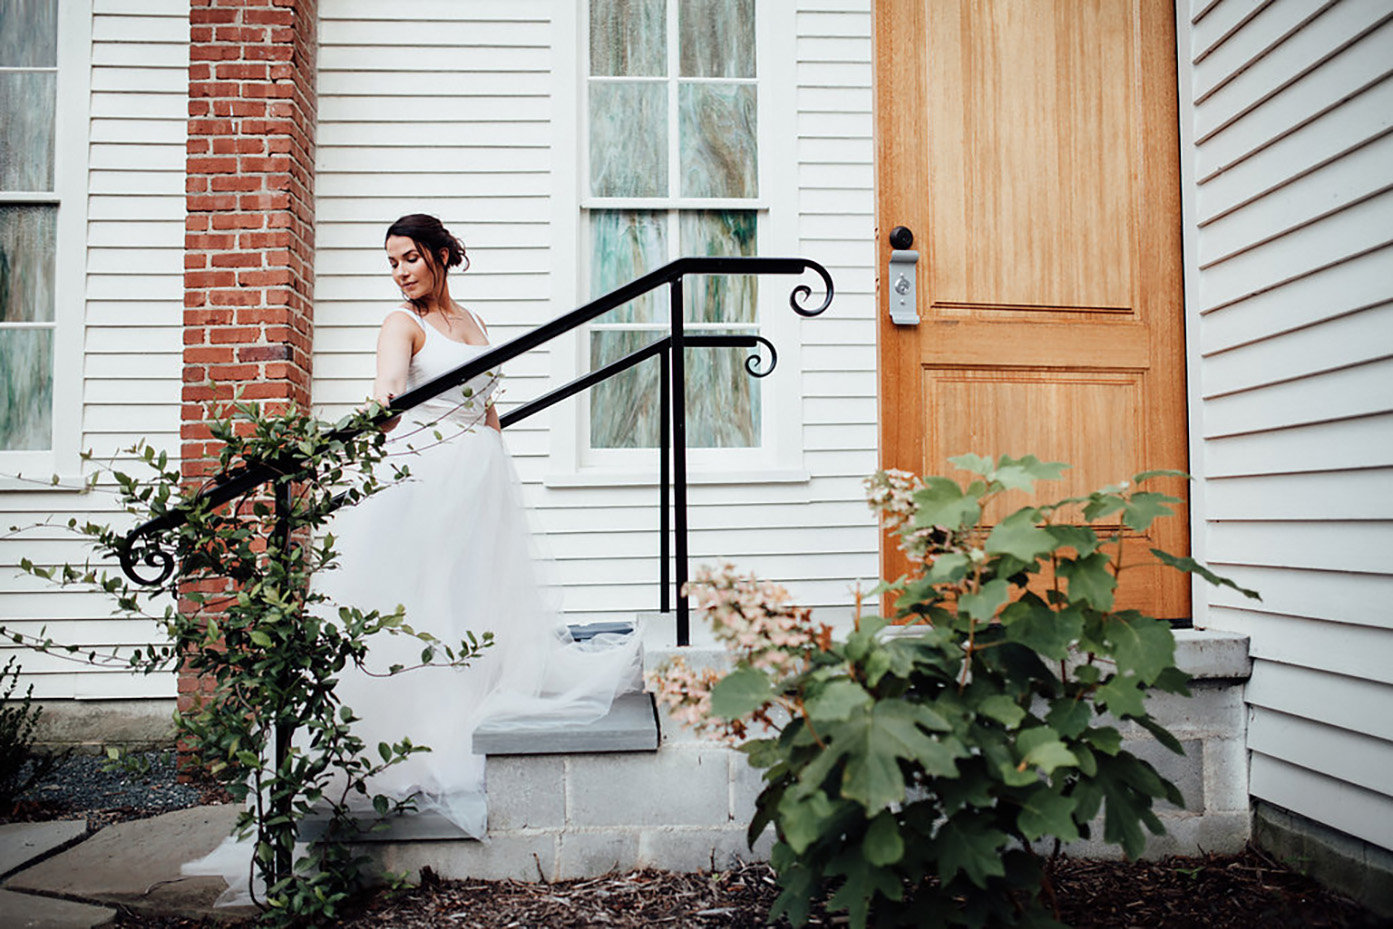 The Parlour Wedding Venue in Chapel Hill, North Carolina